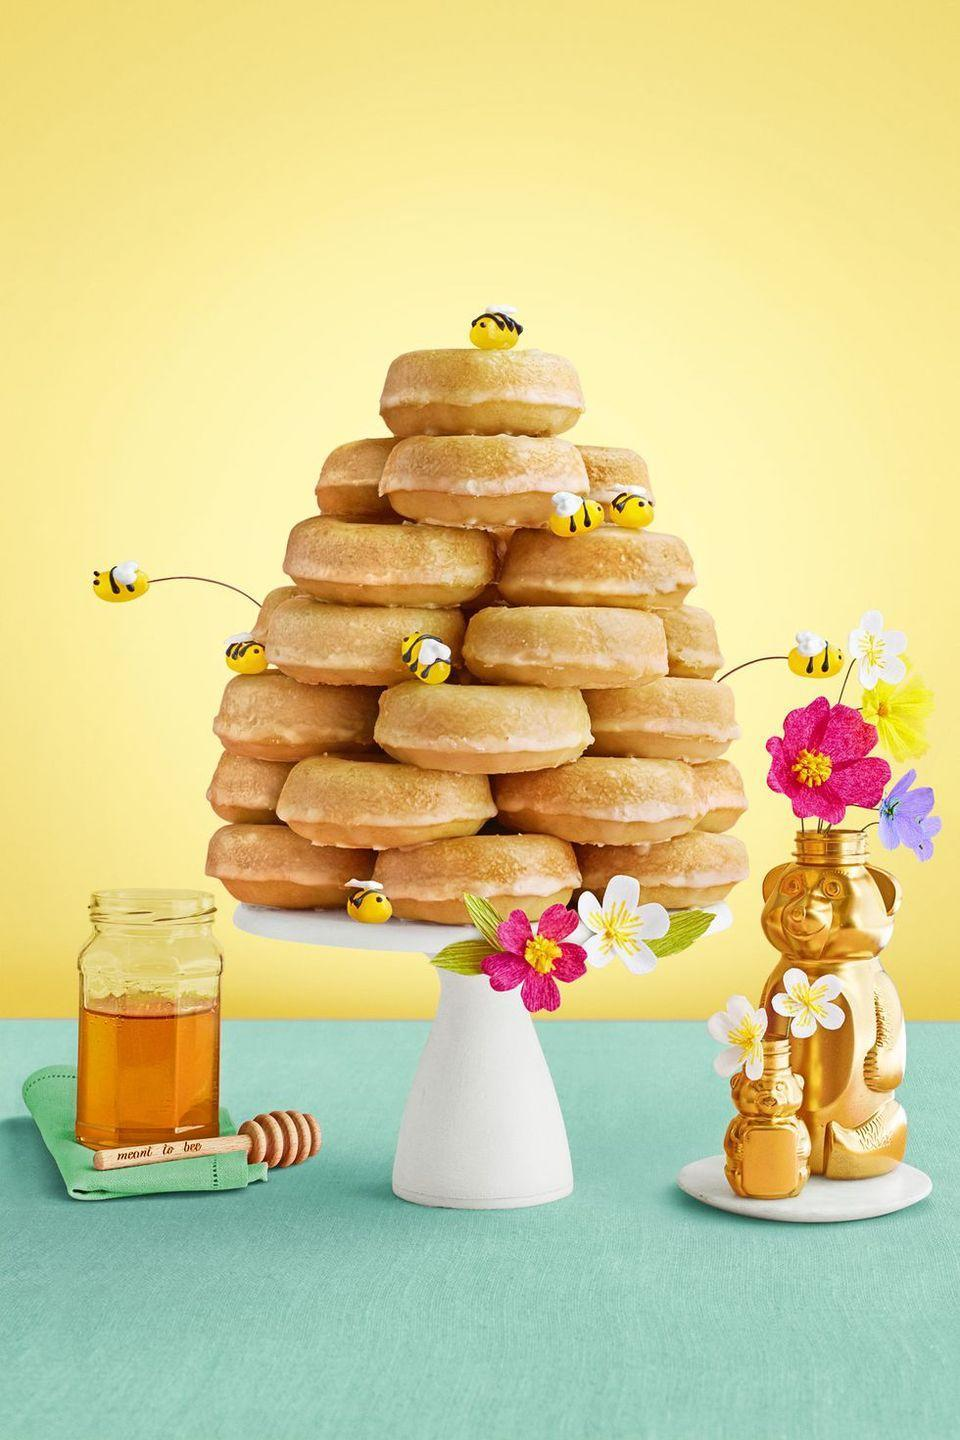 "<p>Psst, use store-bought doughnuts for an <em>even</em> easier dessert. </p><p><em><a href=""https://www.womansday.com/food-recipes/food-drinks/recipes/a58524/glazed-honey-doughnut-beehive-recipe/"" rel=""nofollow noopener"" target=""_blank"" data-ylk=""slk:Get the recipe from Woman's Day »"" class=""link rapid-noclick-resp"">Get the recipe from Woman's Day »</a></em></p>"